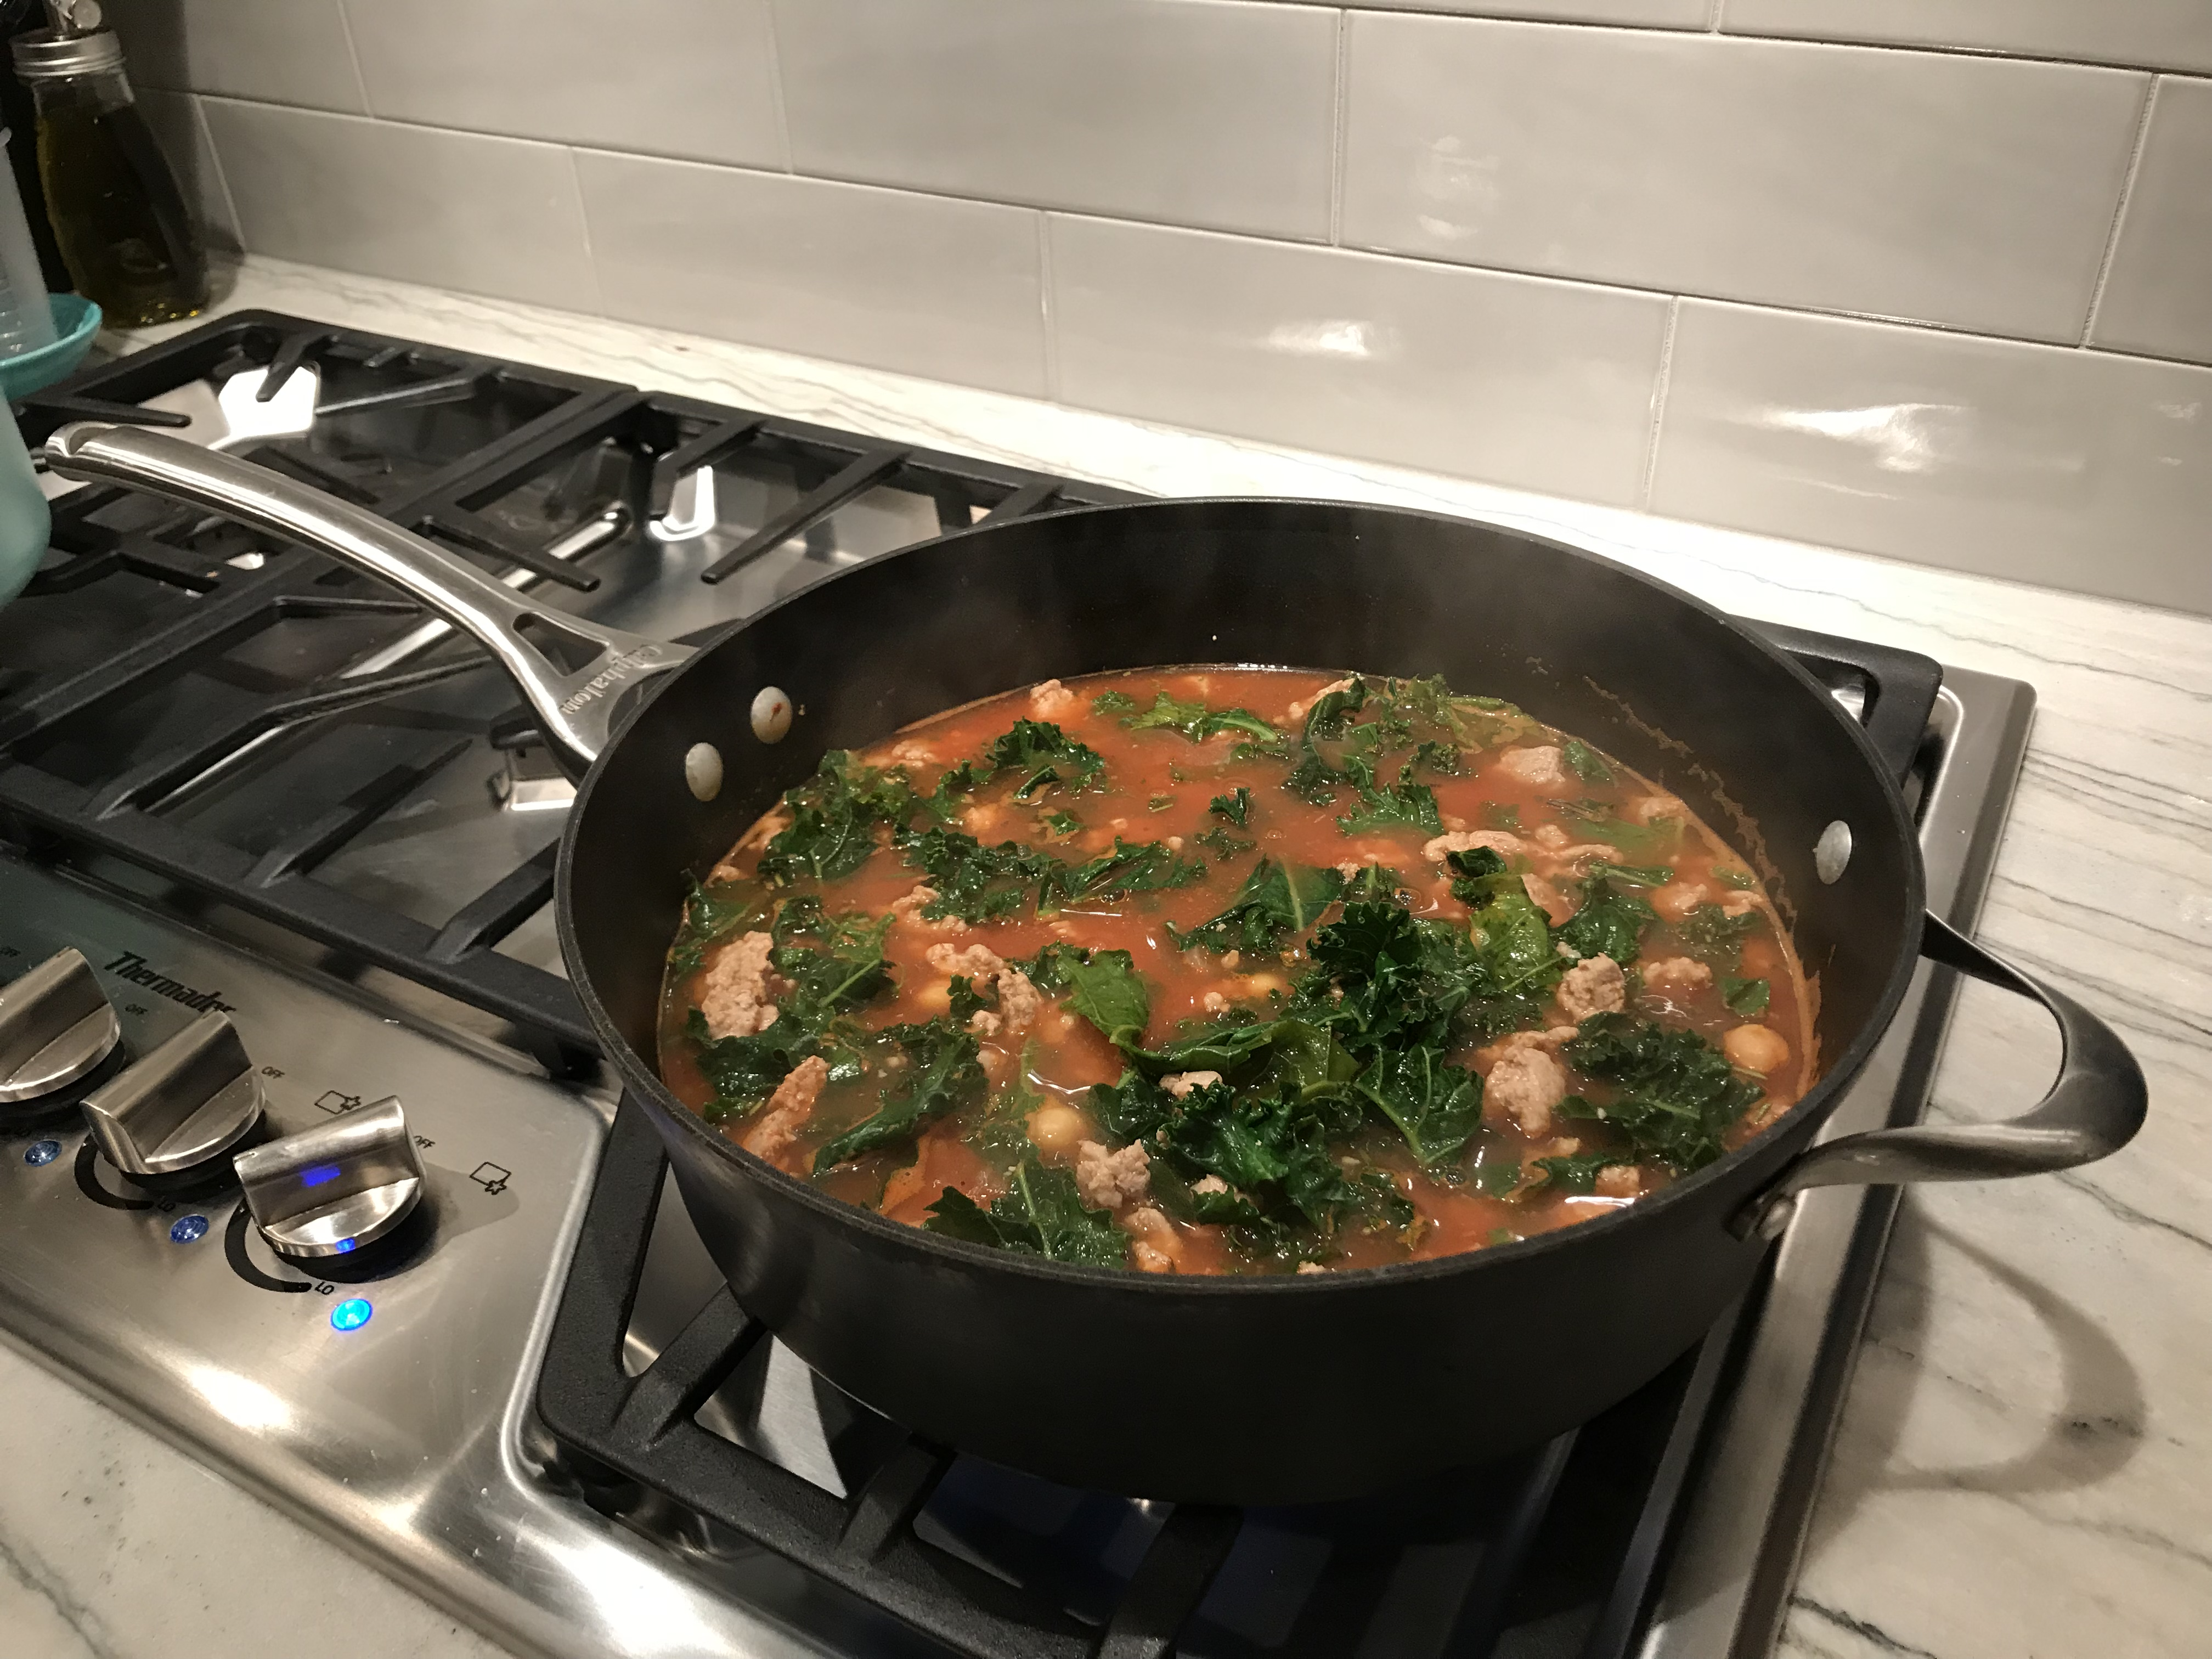 Turkey Garbanzo Bean and Kale Soup with Pasta Haley Hoffenberg Mitchell